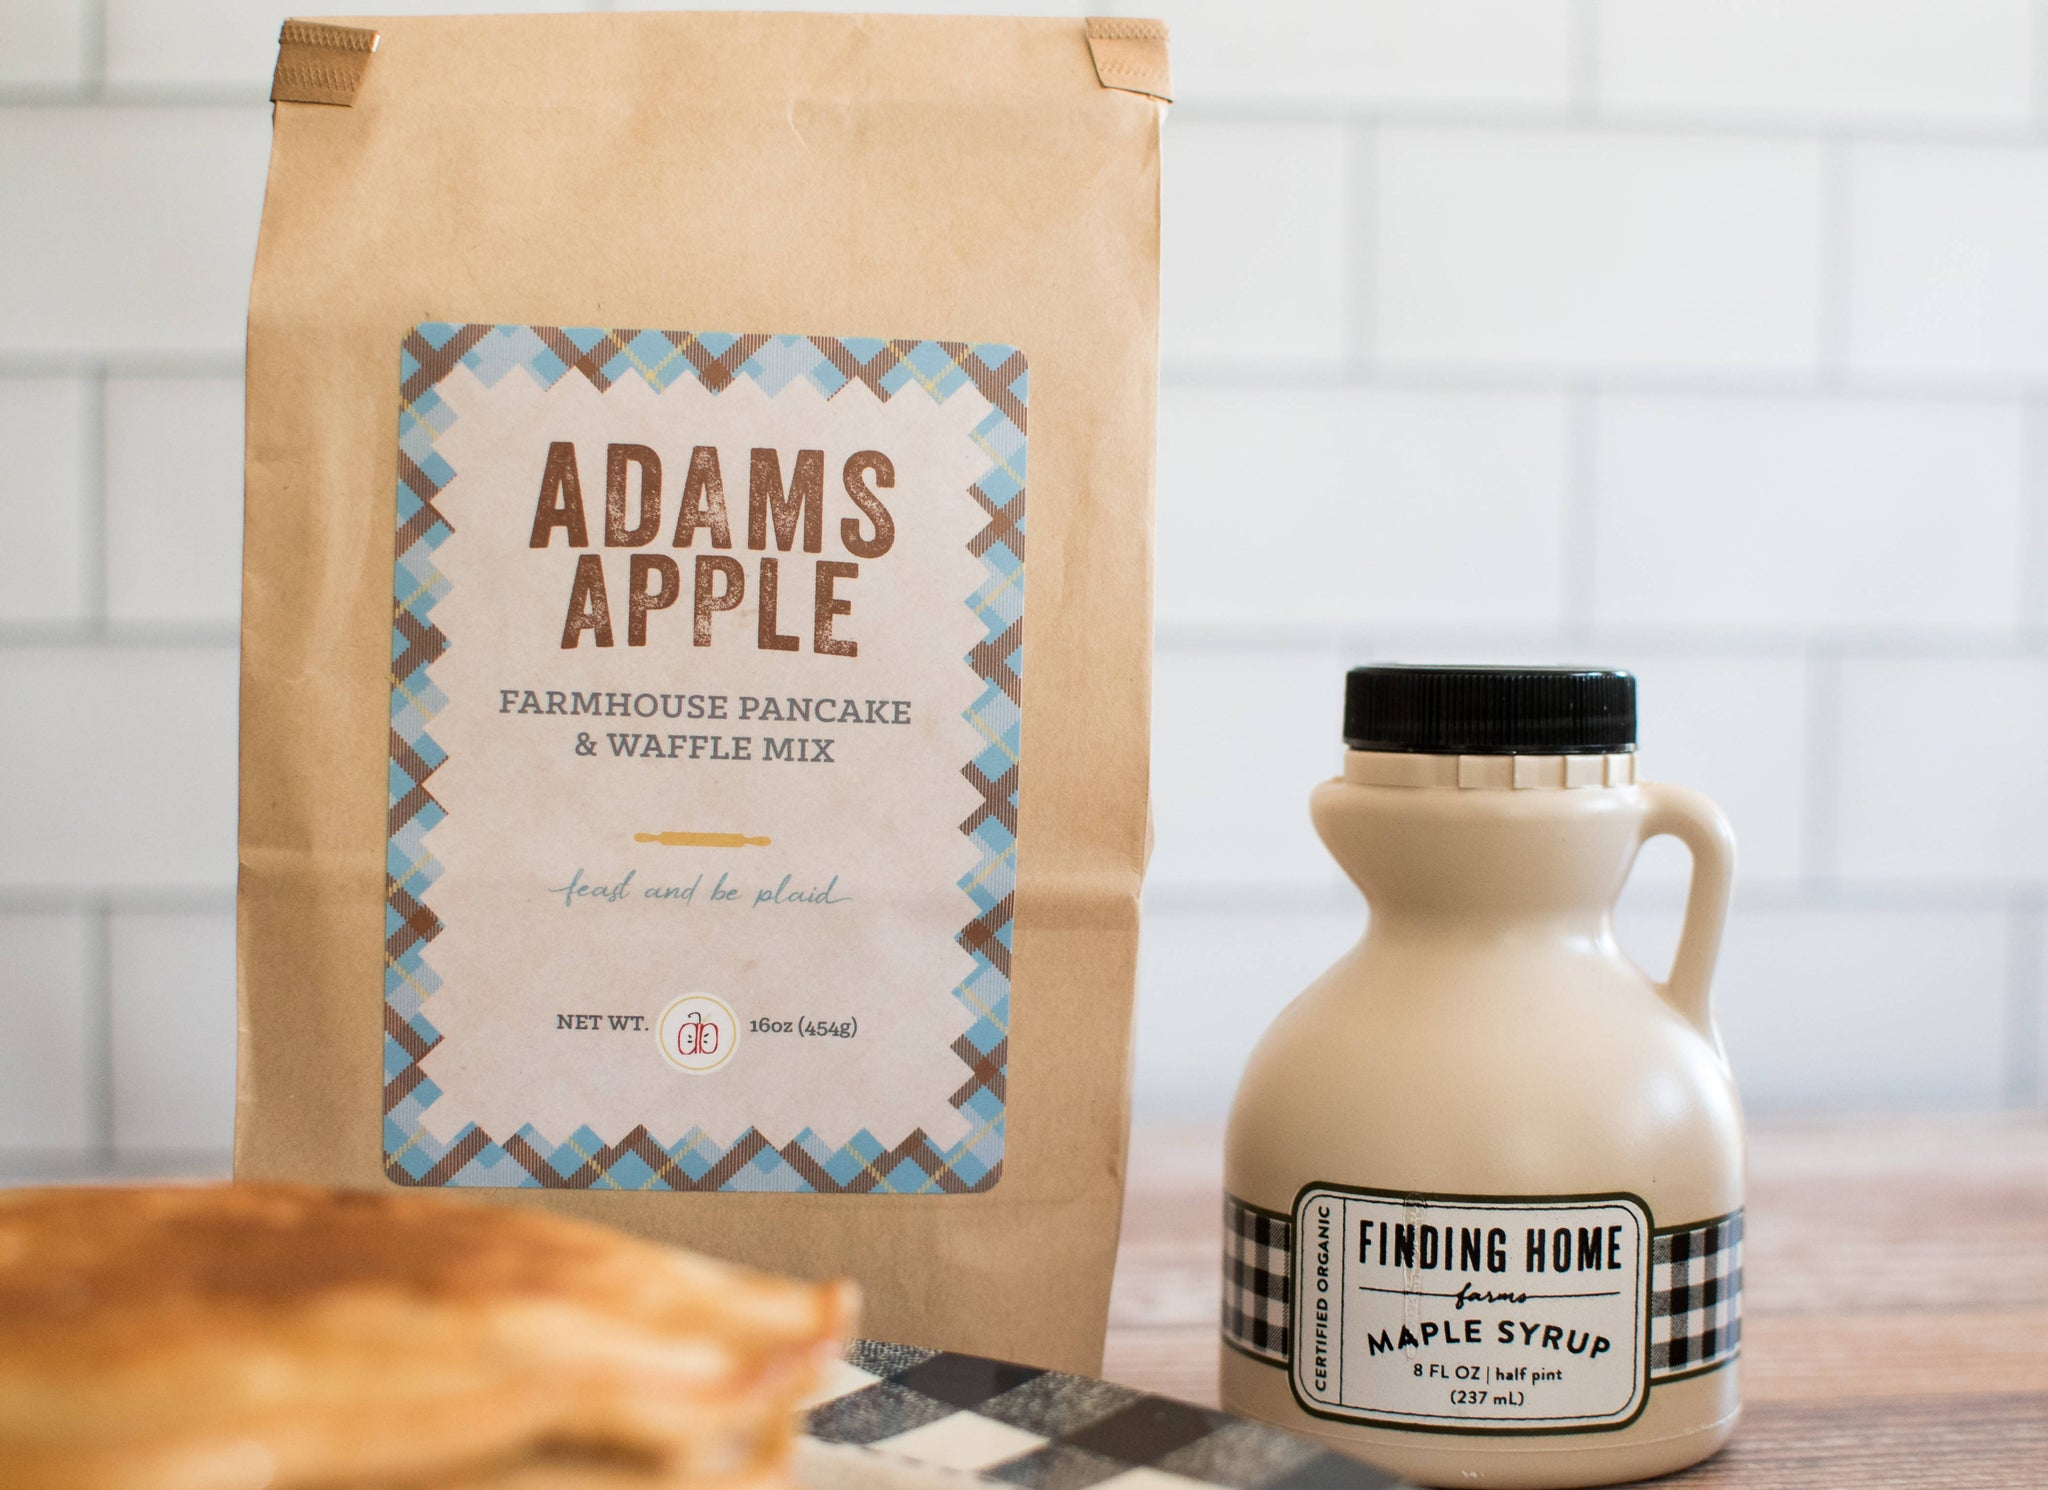 ADAMS APPLE FARMHOUSE PANCAKE AND WAFFLE MIX